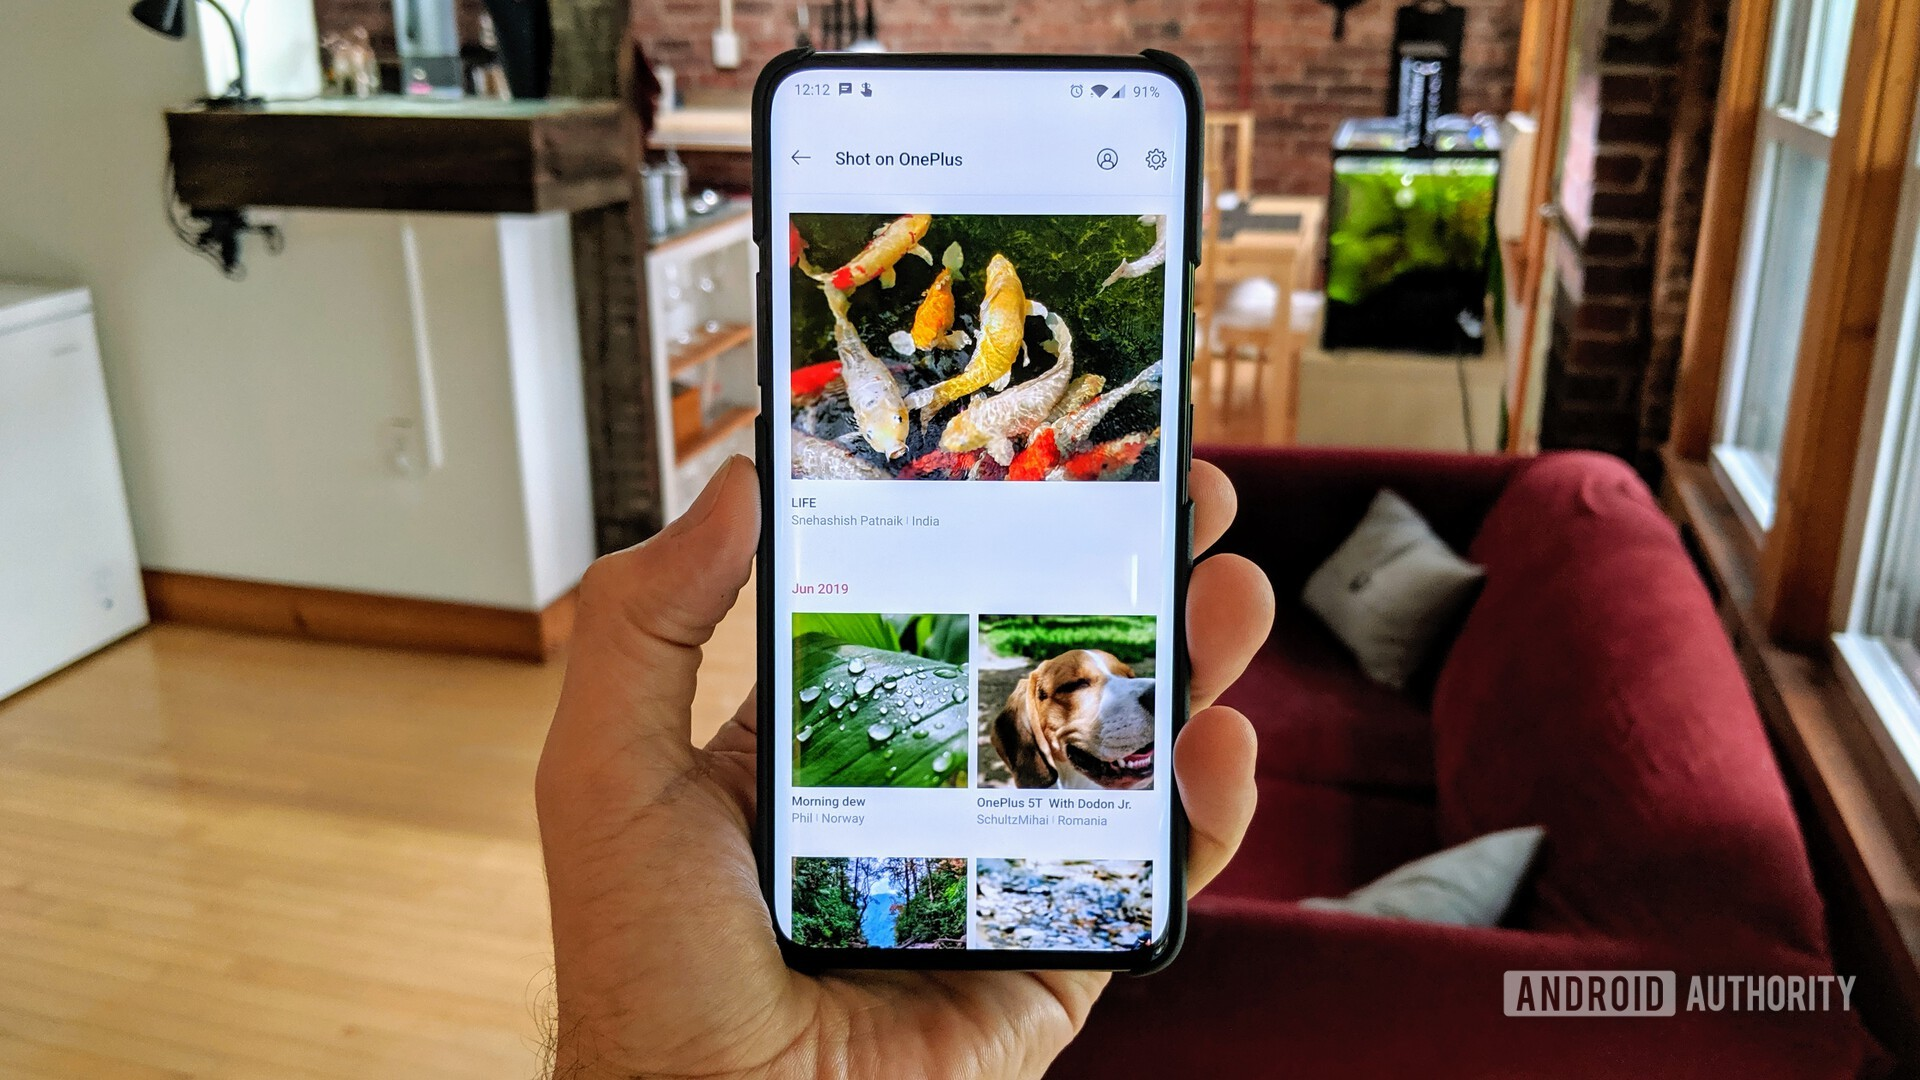 A photo of the OnePlus 7 Pro with the Shot on OnePlus wallpaper app open.